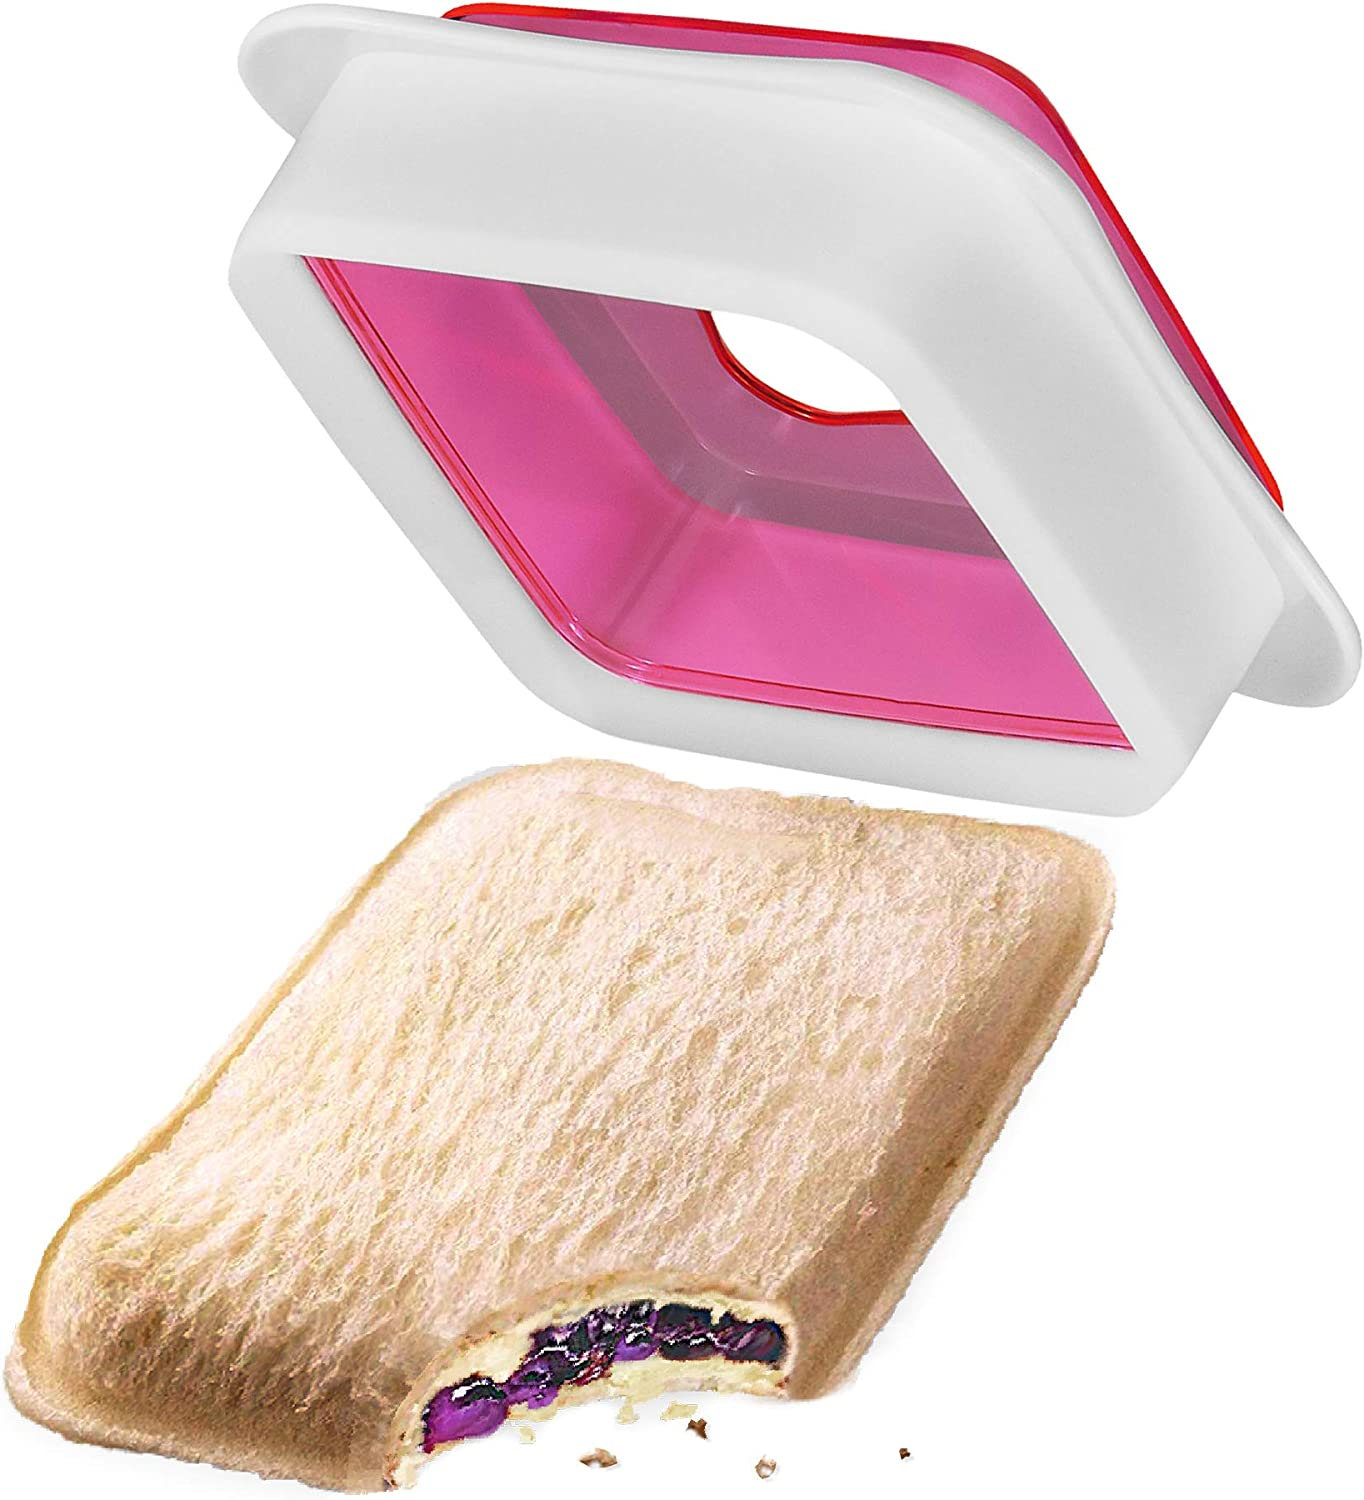 Affordable Sandwich Cutter and Sealer – Cutting Food Sealer for Sandwiches – Premium Peanut Butter Maker for Kids – Quick and Easy to Use – No Mess Tasty Food Cutters for Kids